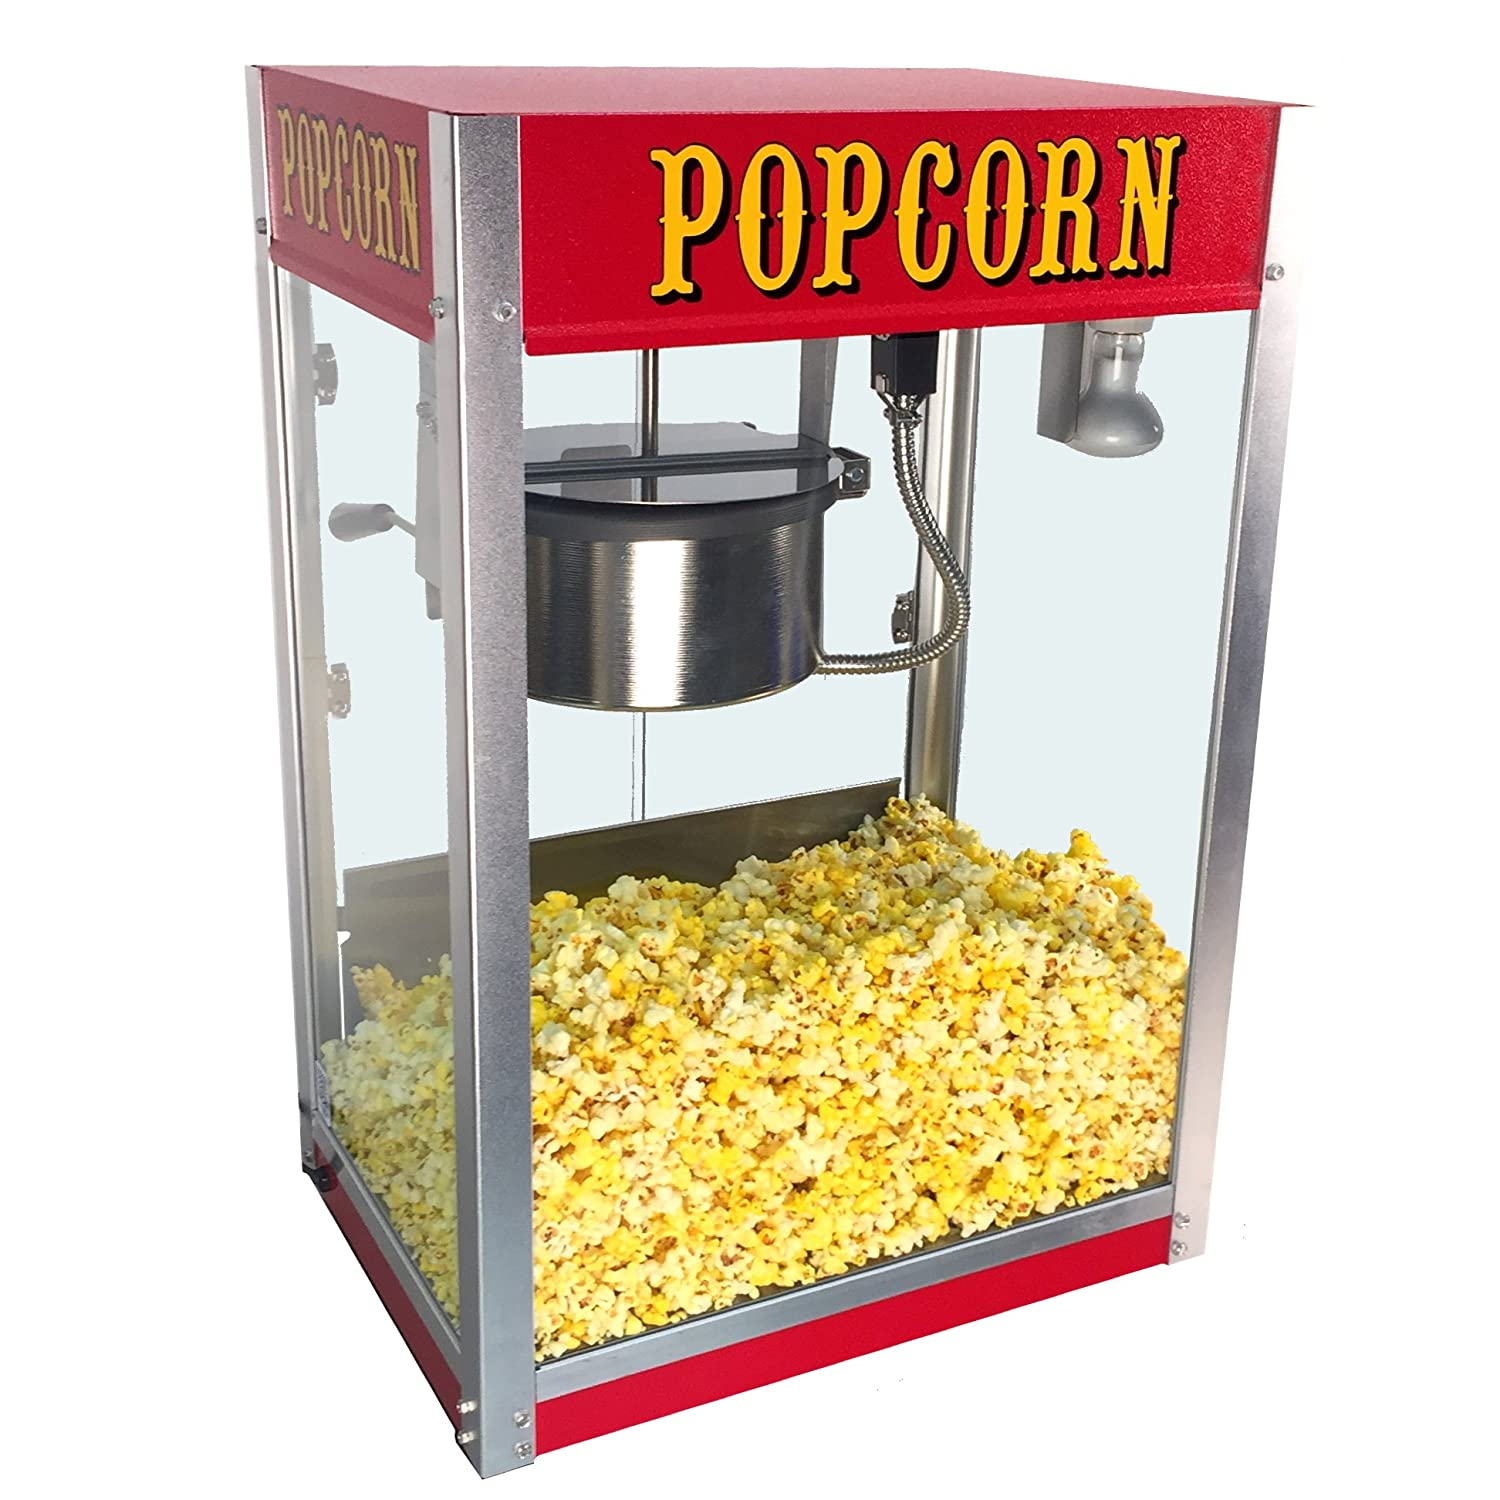 Paragon Theater Pop 8 Ounce Popcorn Machine for Professional Concessionaires Requiring Commercial Quality High Output Popcorn Equipment